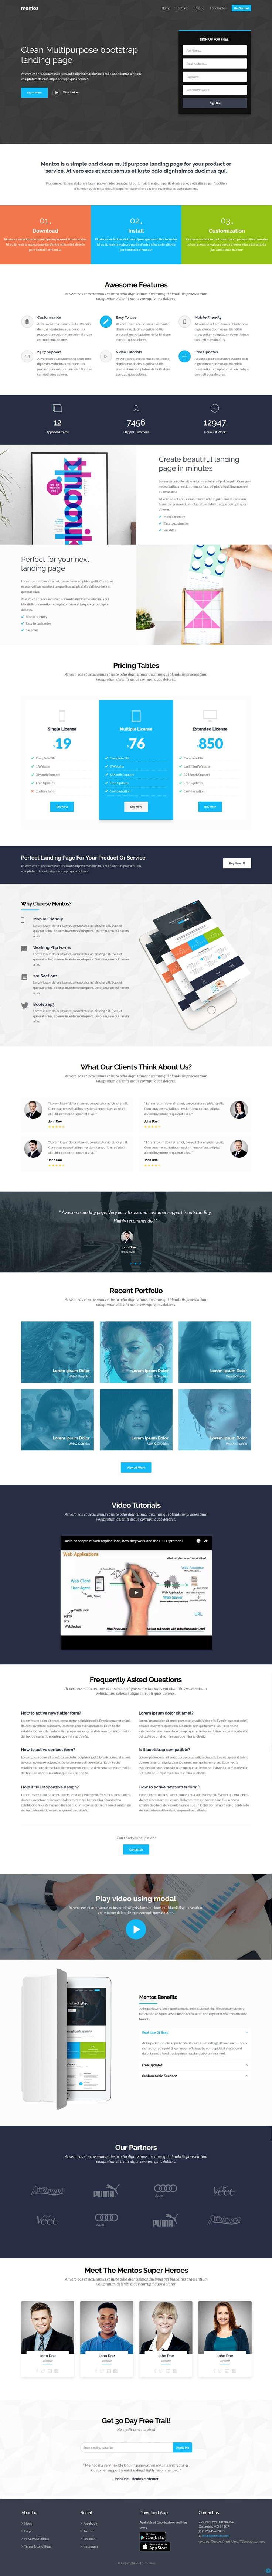 Mentos is a perfect 7 in 1 @bootstrap #landingpage #template for business, corporate, agency, products, services, app #website with amazing features download now➝ https://wrapbootstrap.com/theme/mentos-multipurpose-landing-page-WB004BTR7?ref=datasata